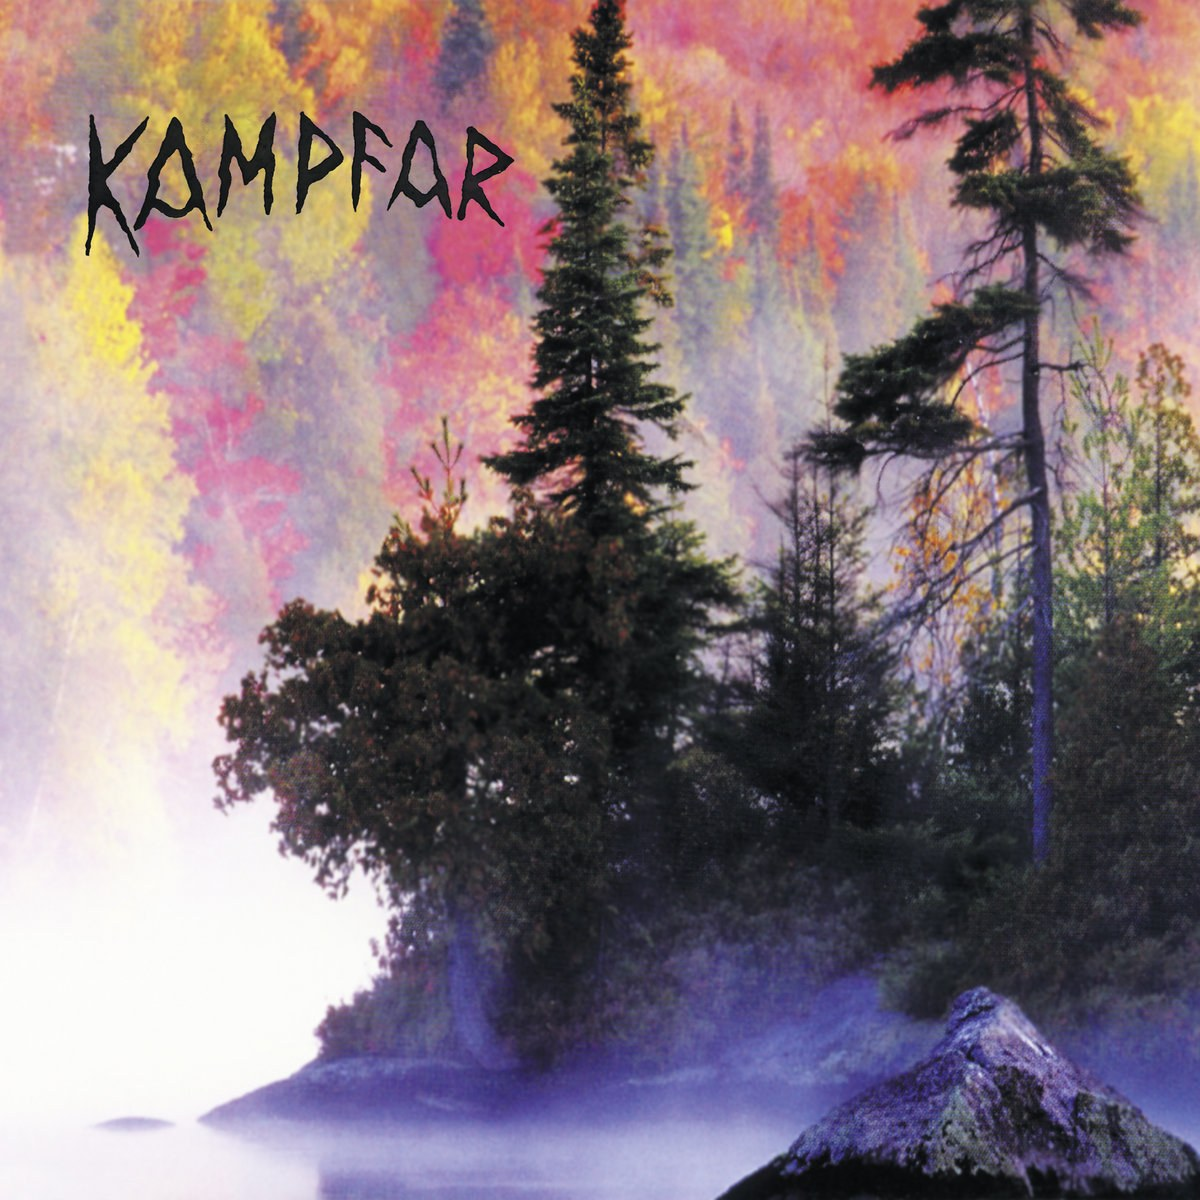 Review for Kampfar - Kampfar